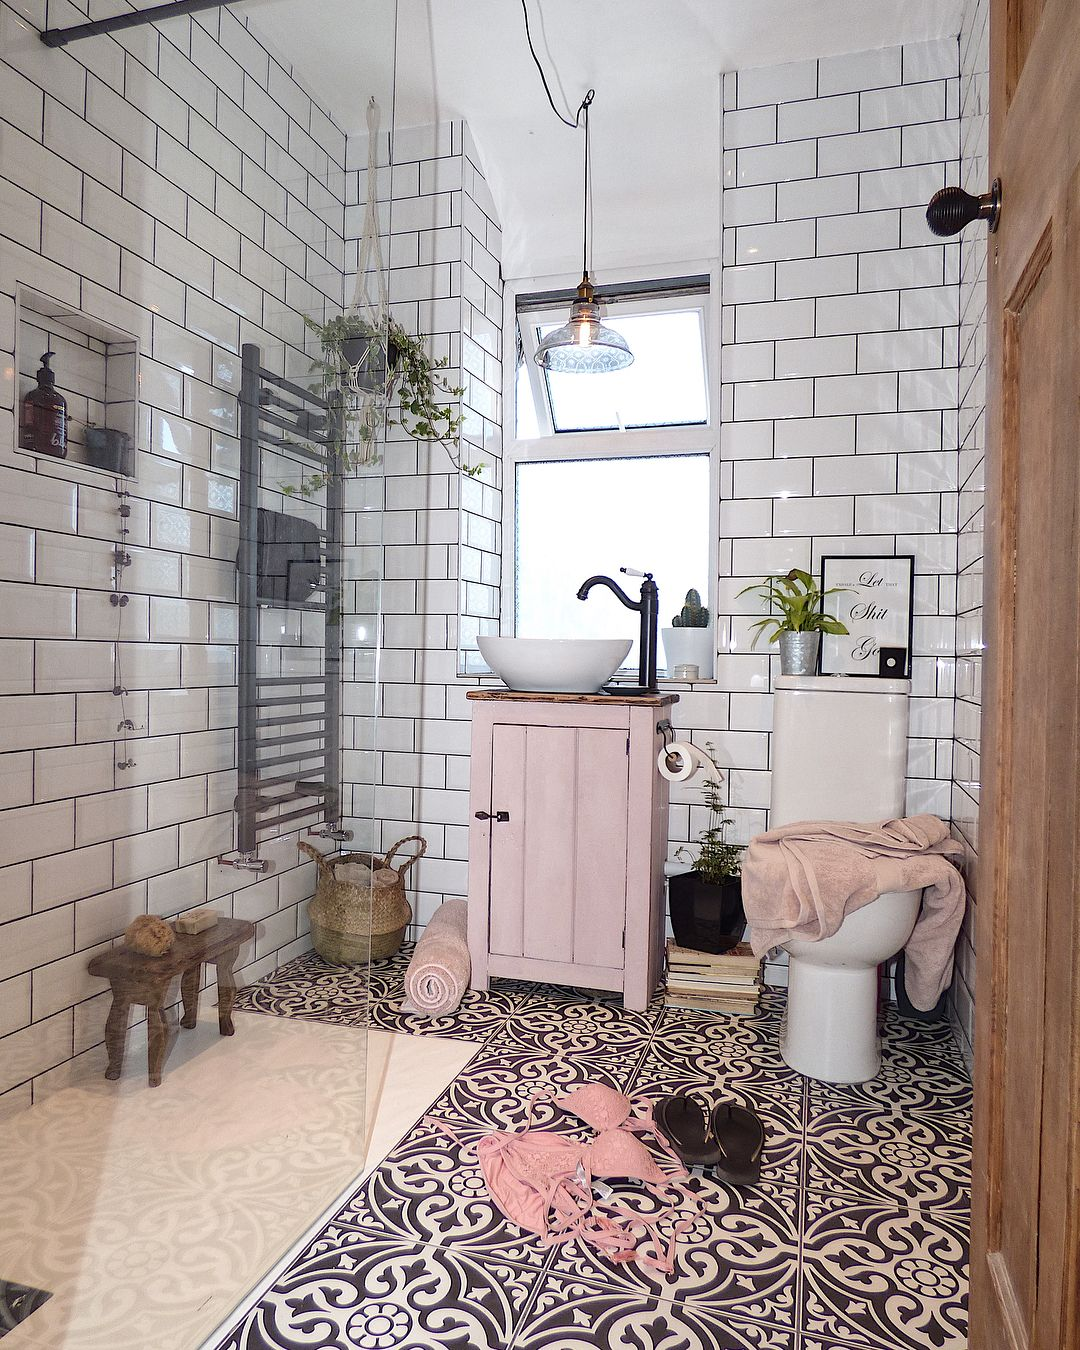 Bora Da Insta Sun Is Shining Here In North Wales And I Got All My Chores Done Yesterday So Today I M Going To Read A Book Pink Room Design Home Famous inspiration bathroom color